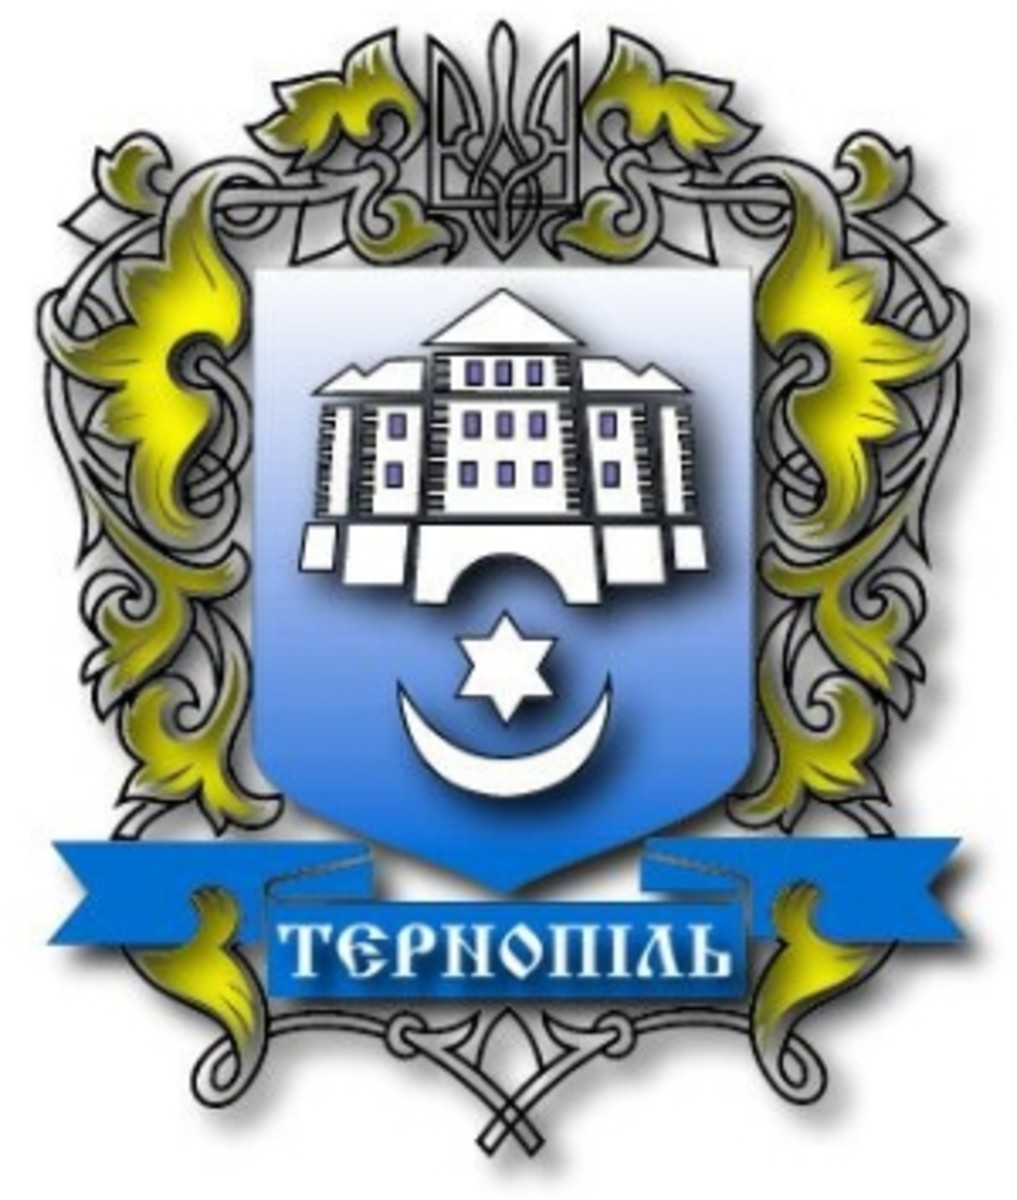 Urology sub-department of the department of Surgey, Ternopil state medical University, Ternopil-Ukraine